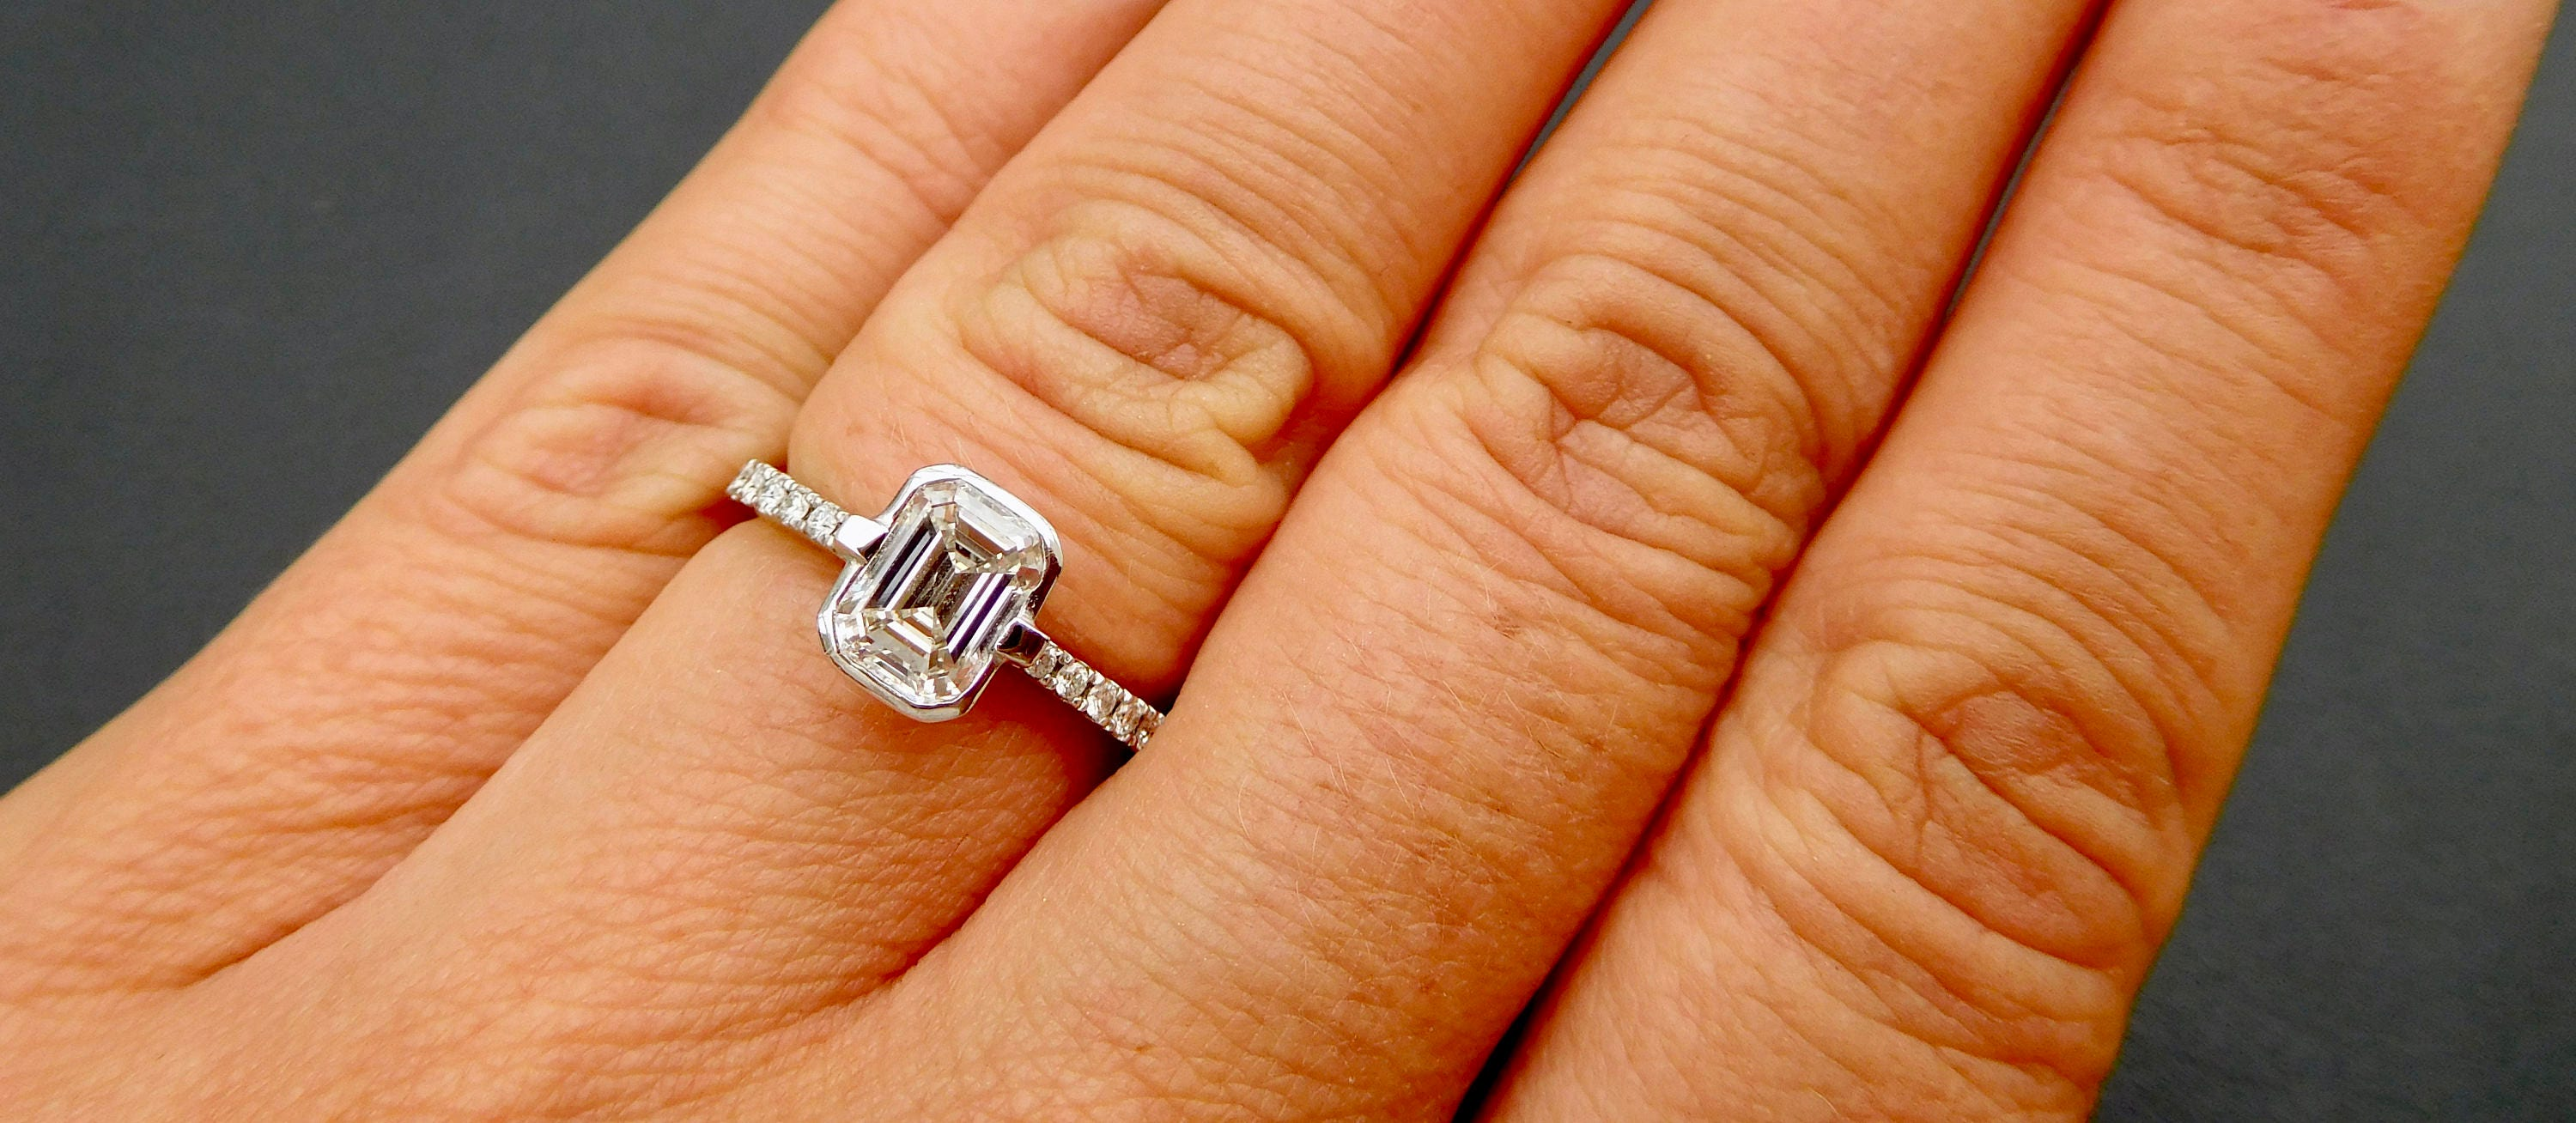 Emerald Cut Diamond Engagement Ring 1ct Emerald Cut Diamond 18ct White Gold And Solitaire Emerald Cut Diamond Ring With Pave Set Shoulders